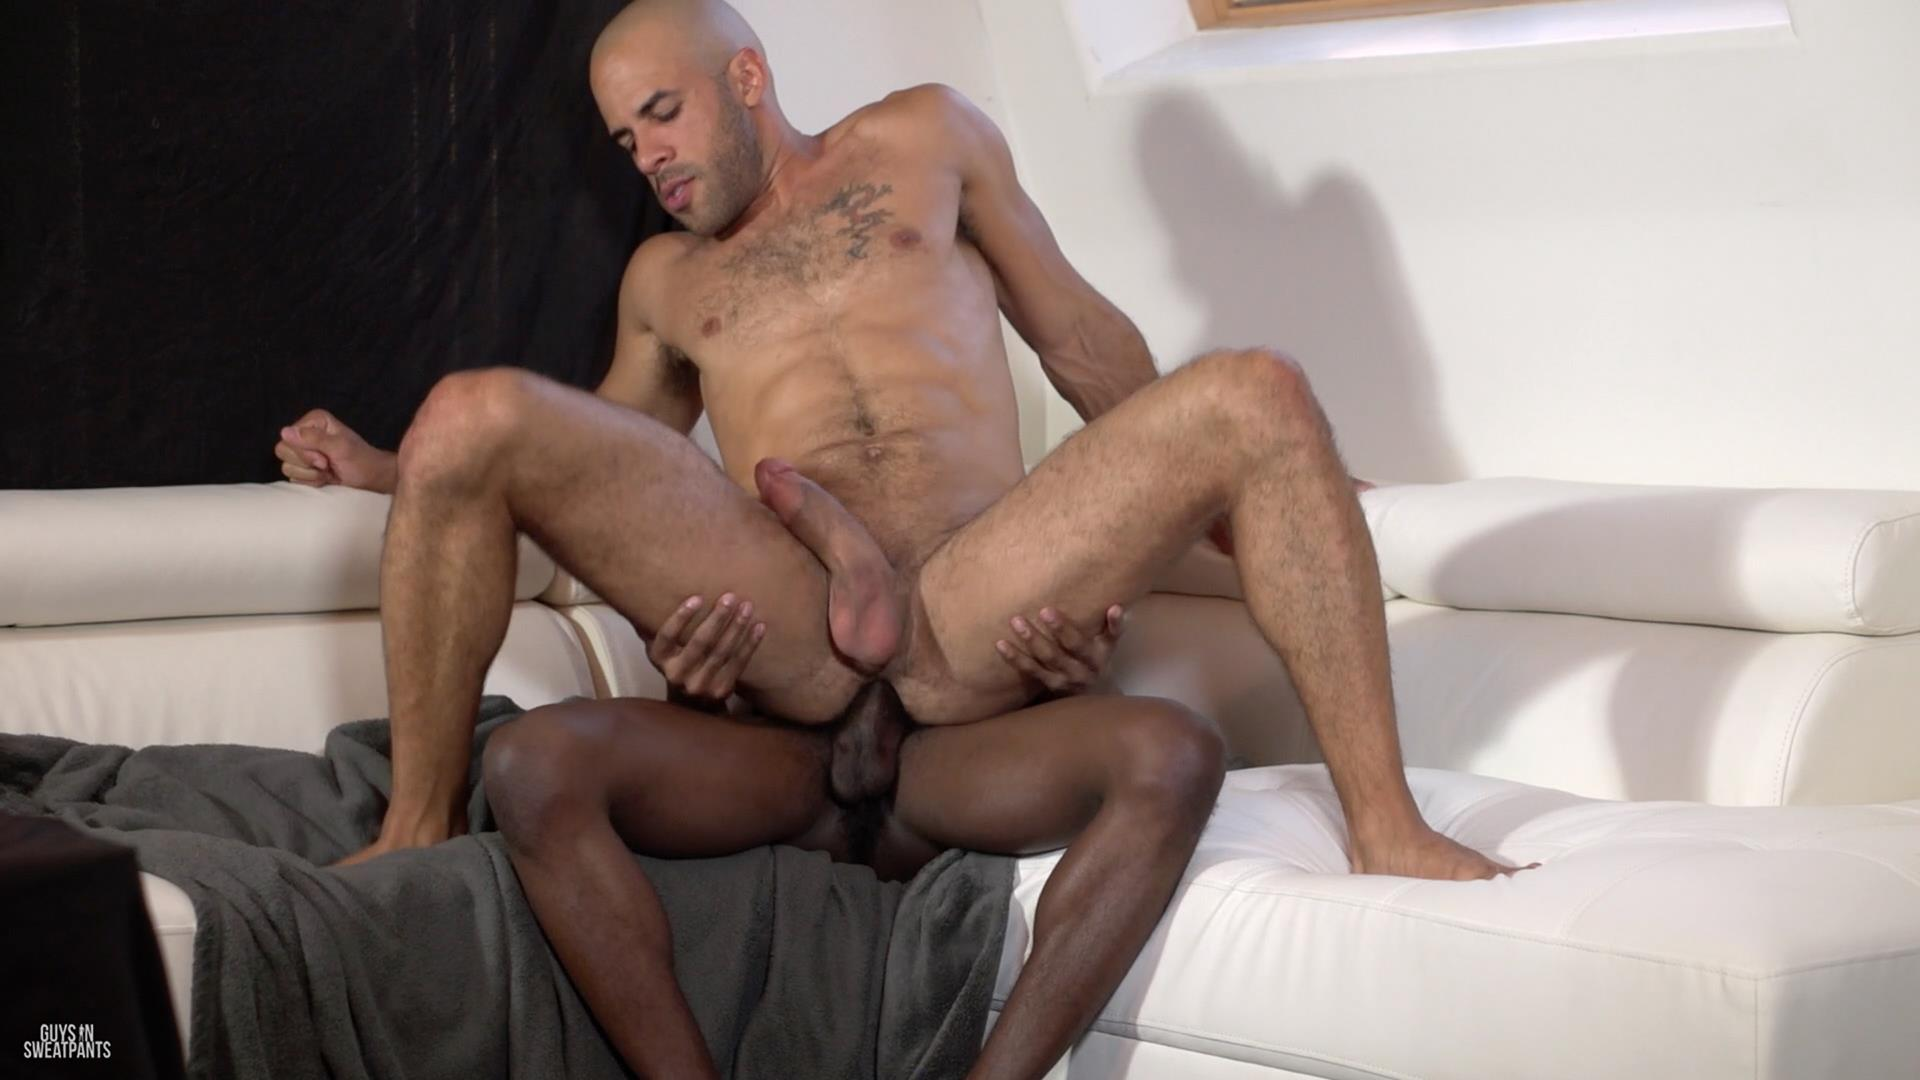 Guys-in-Sweatpants-Austin-Wilde-and-Liam-Cyber-Bareback-Interracial-Sex-Amateur-Gay-Porn-07 Austin Wilde Takes A Big Black Bareback Cock Up The Ass